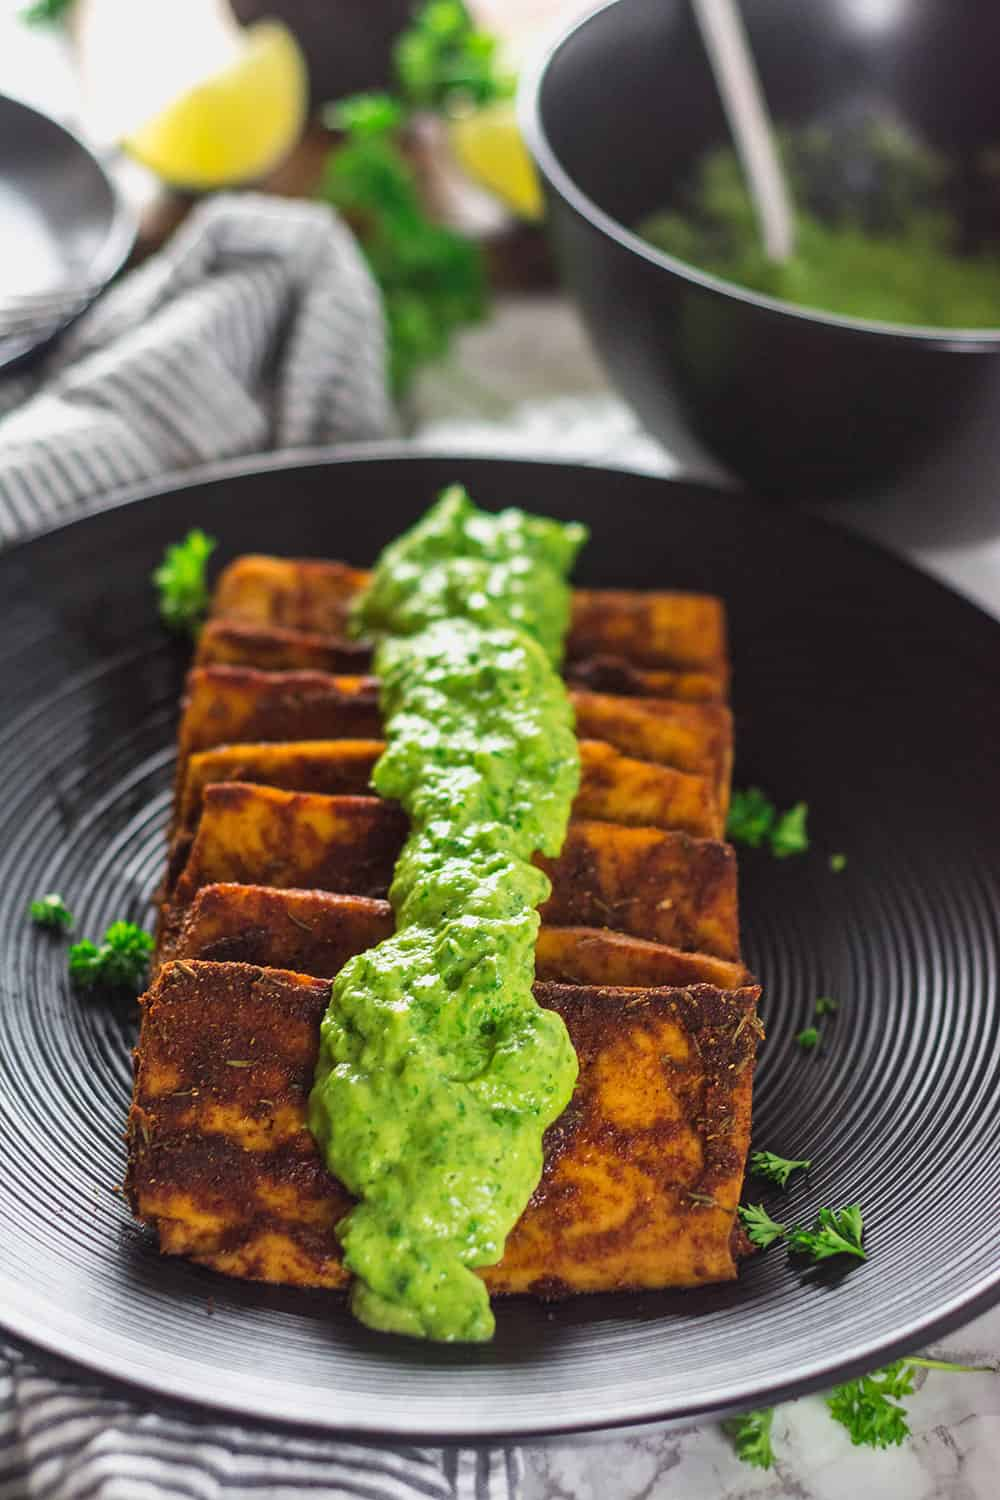 Tofu Steaks With Avocado Chimichurri